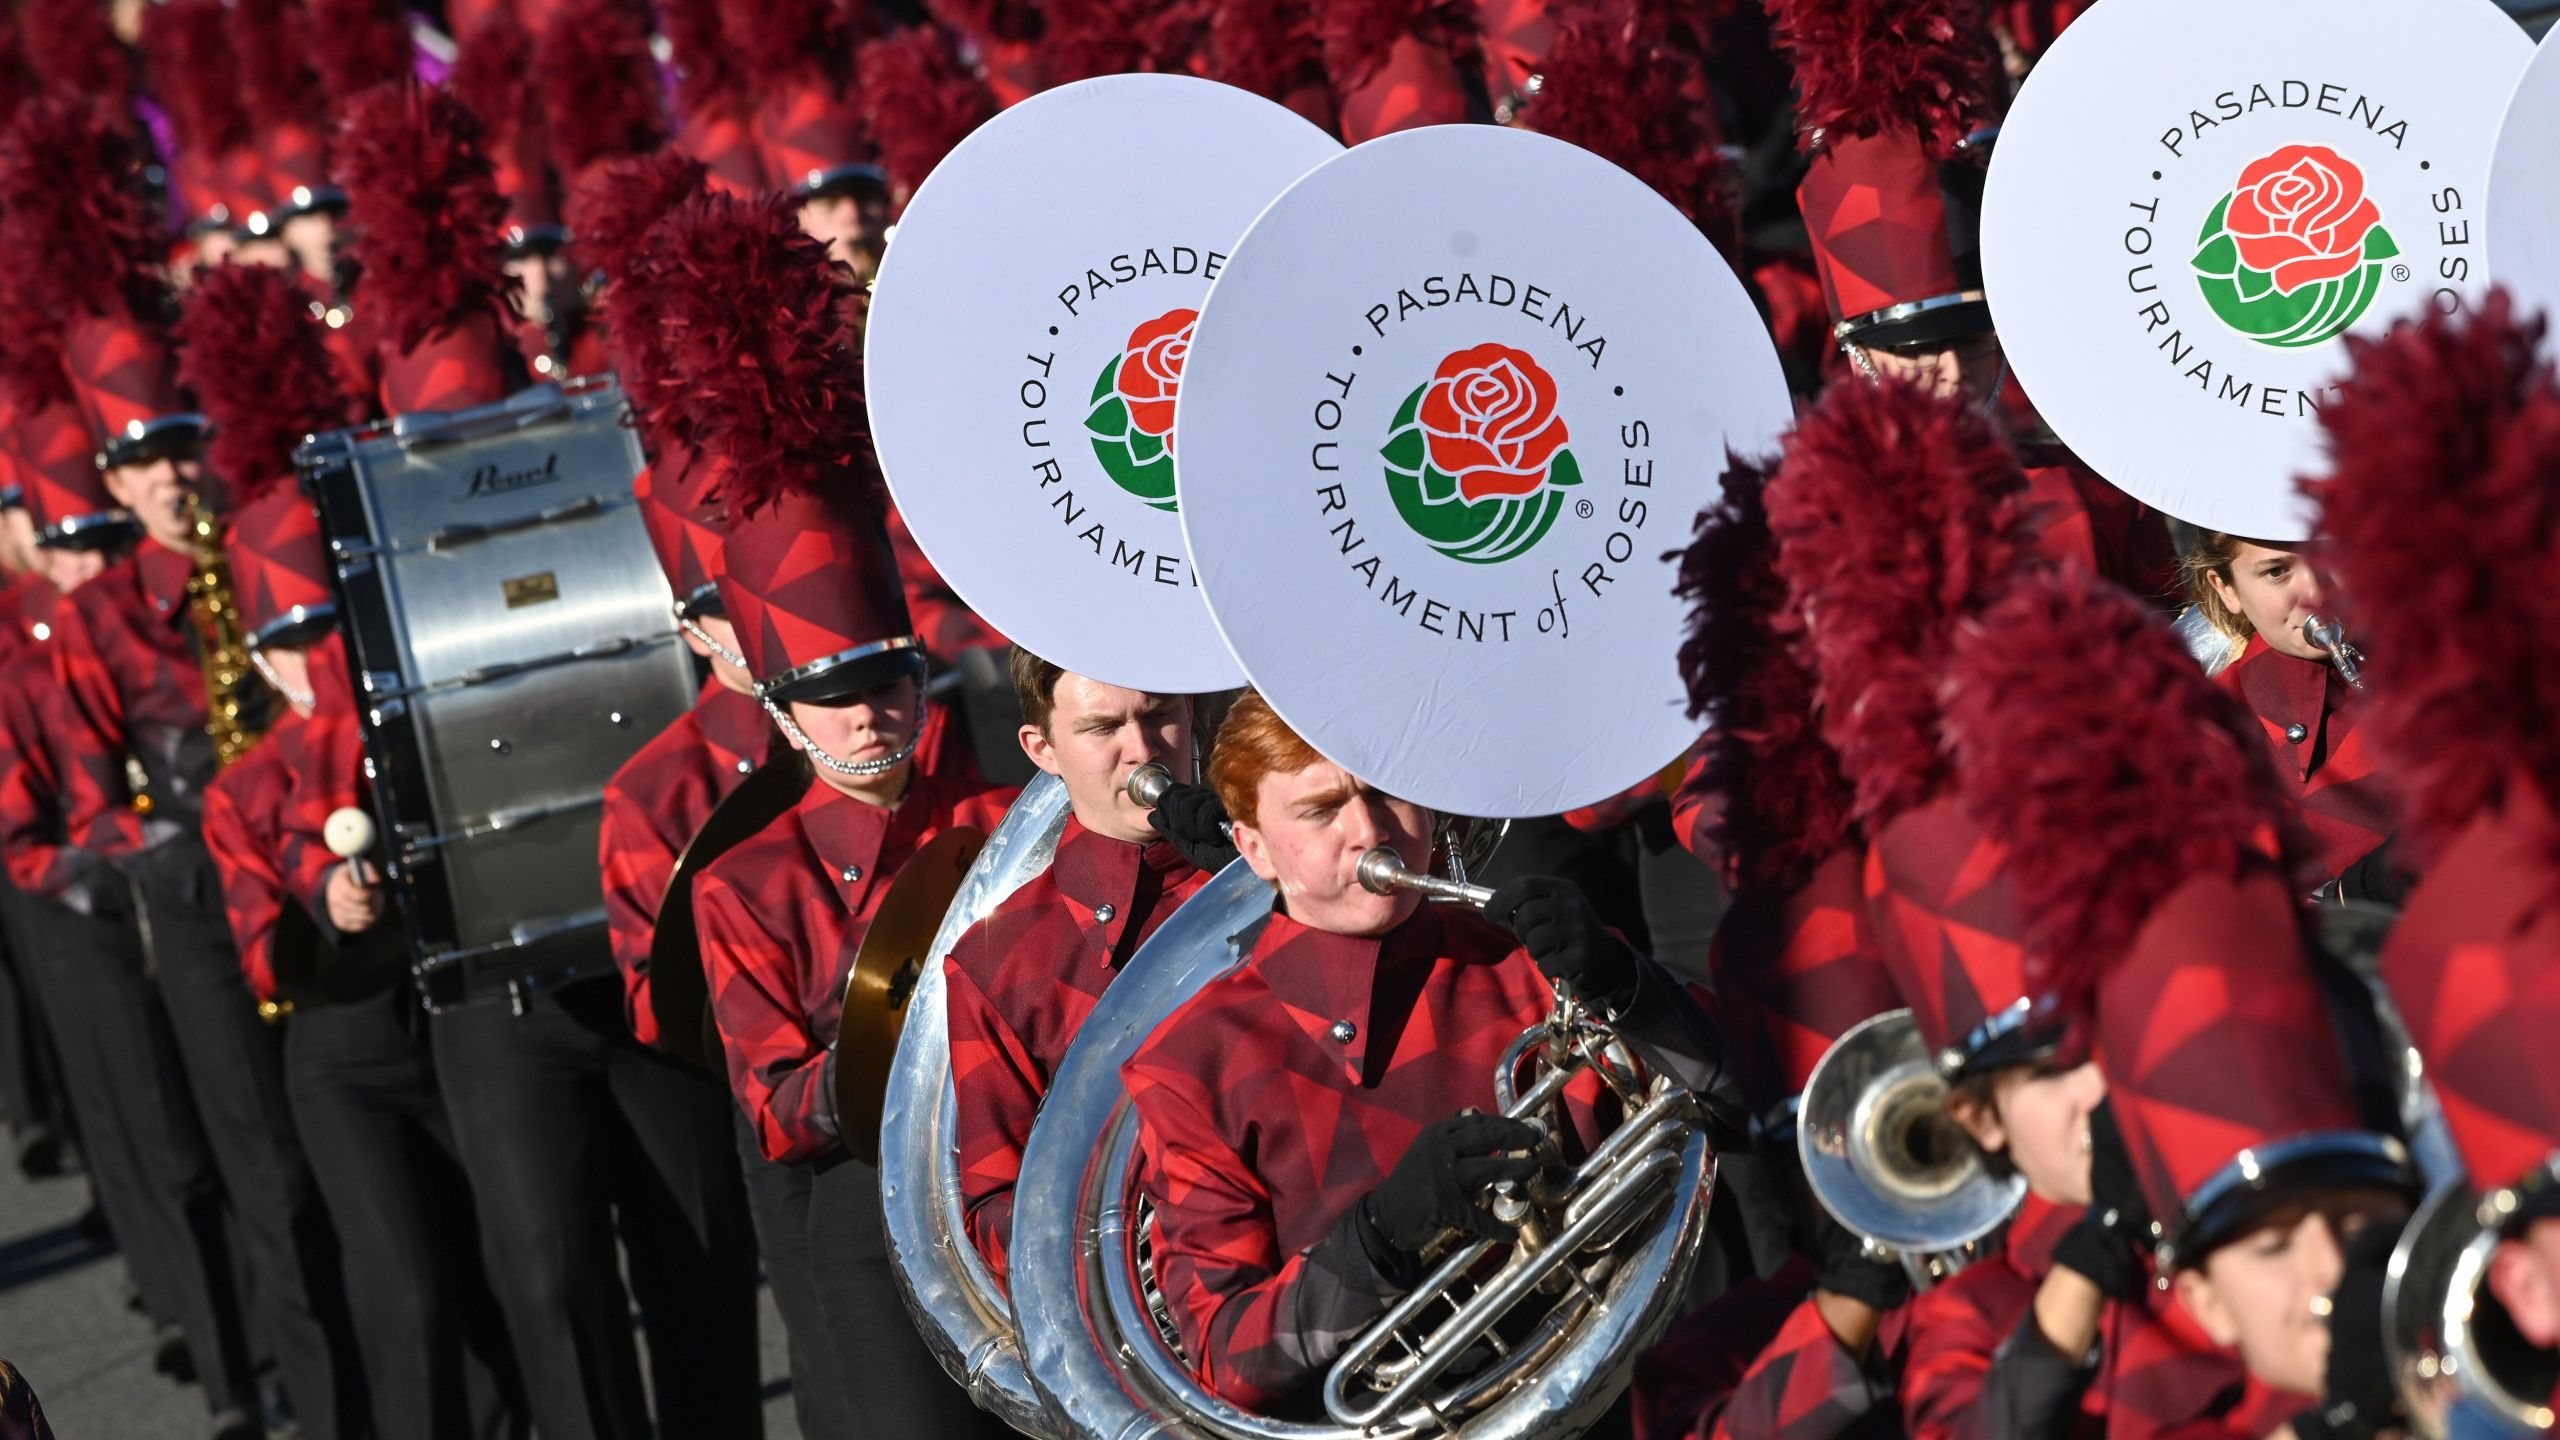 A marching band participates in the 131st Rose Parade in Pasadena, California, Jan. 1, 2020. (ROBYN BECK/AFP via Getty Images)